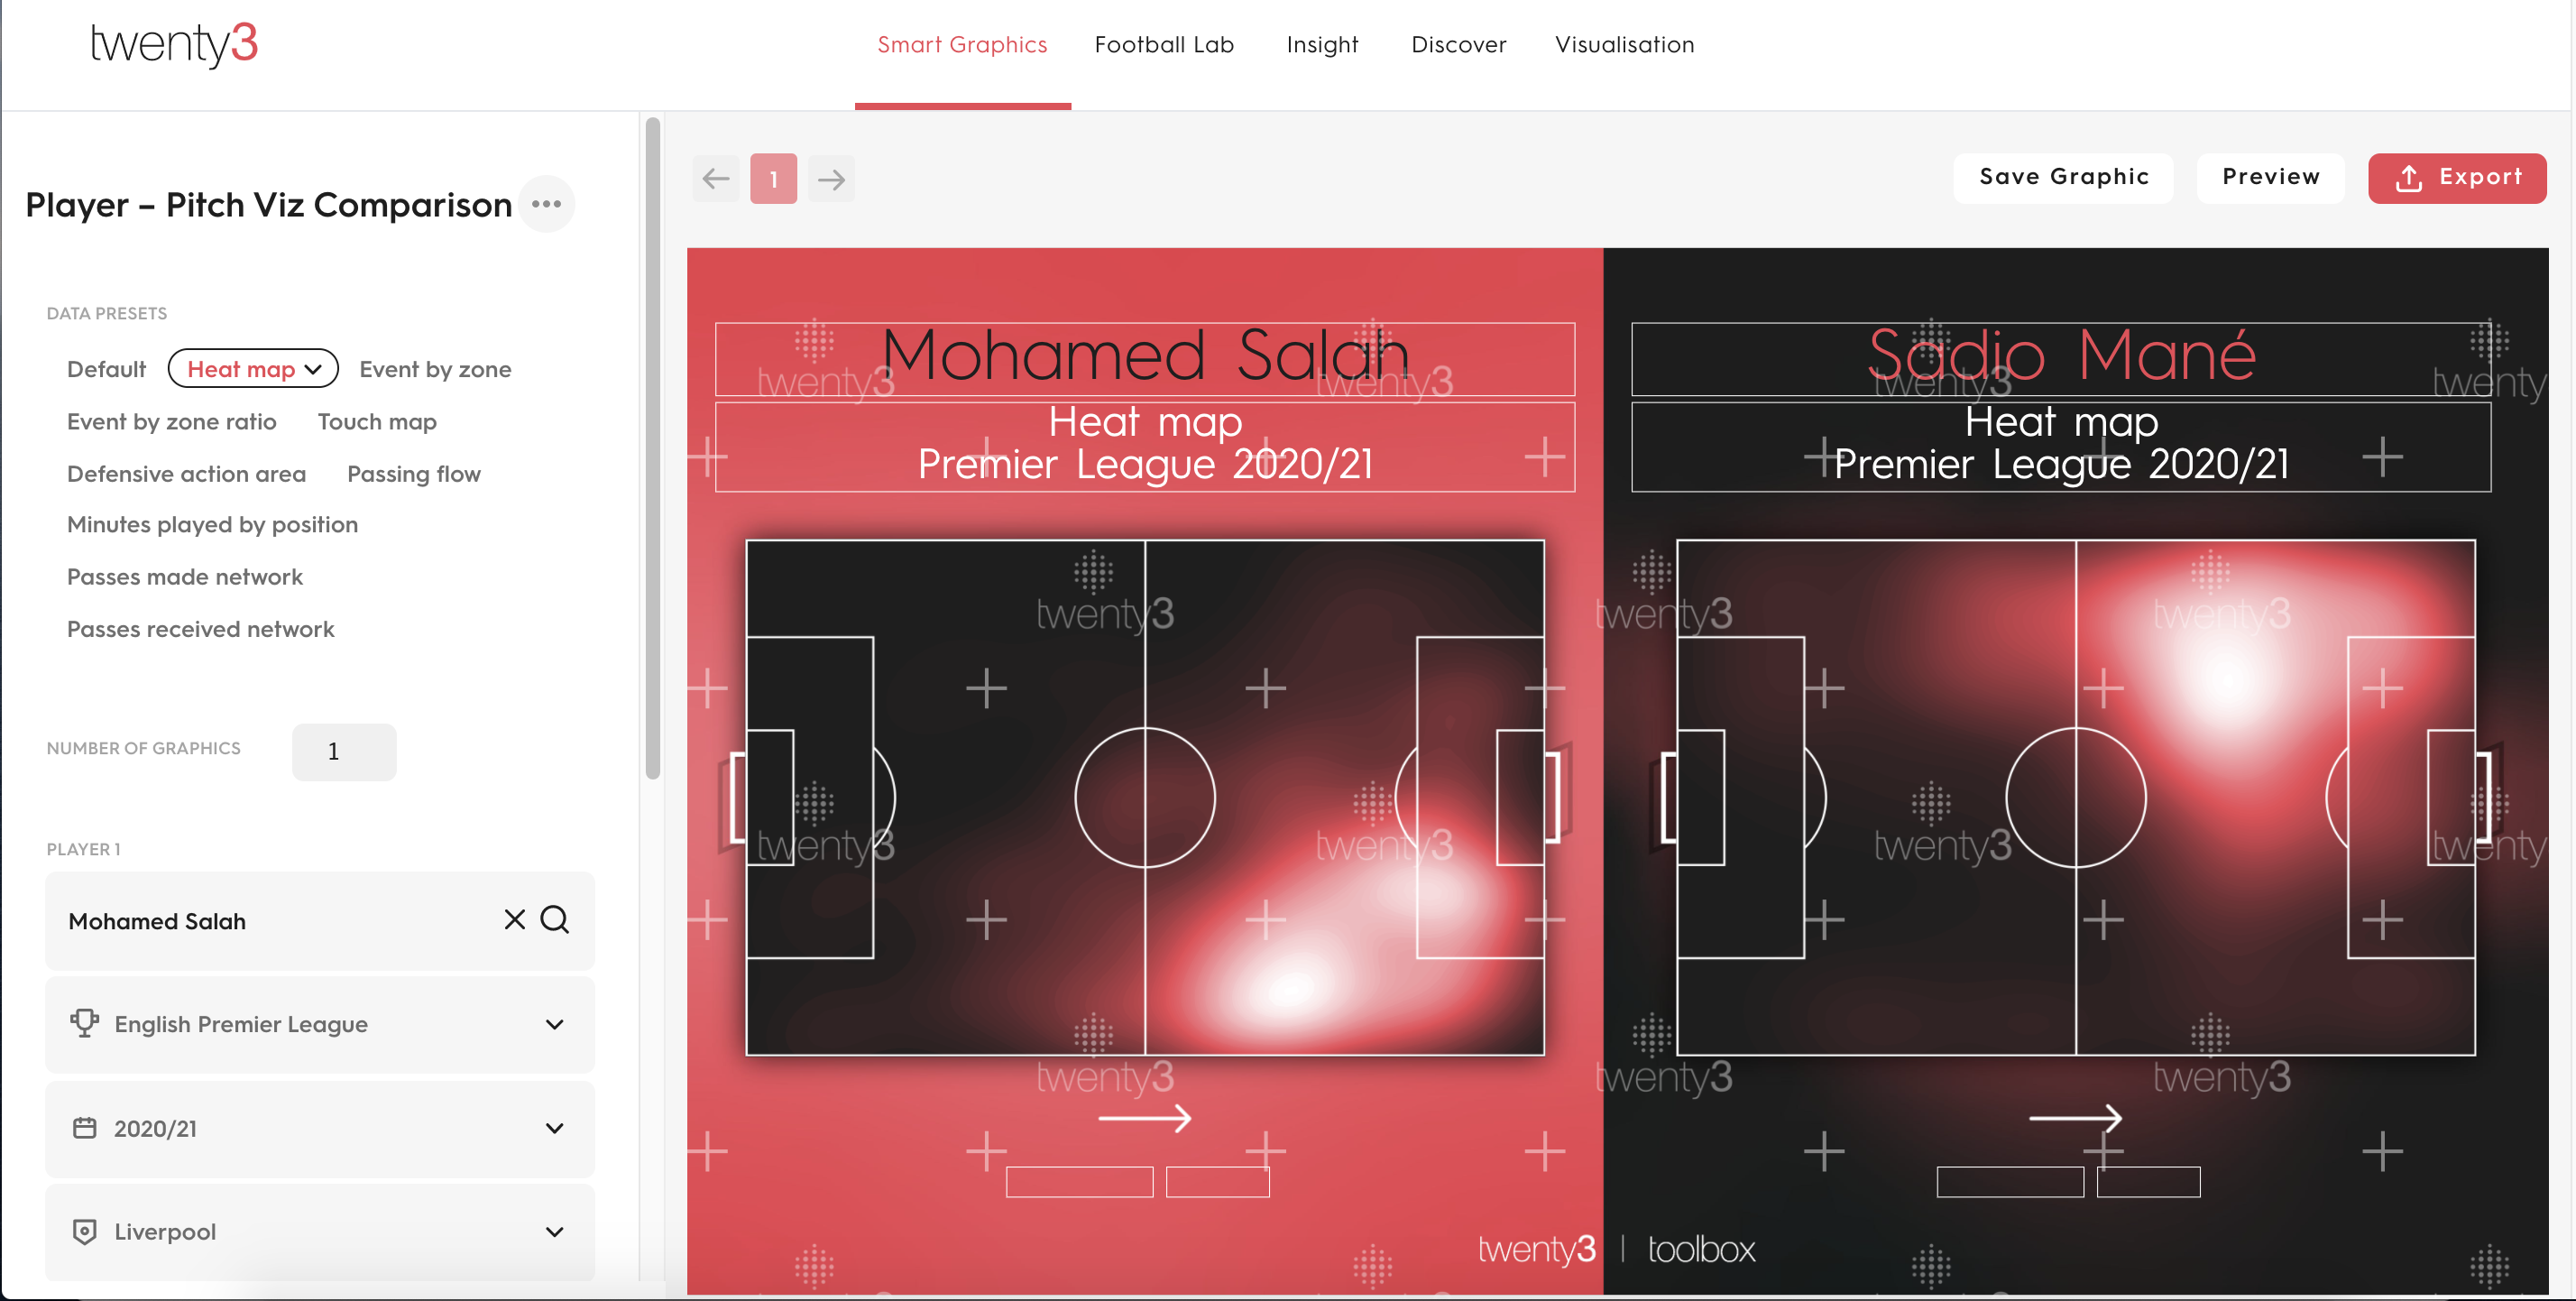 Visualisations automatically pull through to Twenty3's Smart Graphics tool